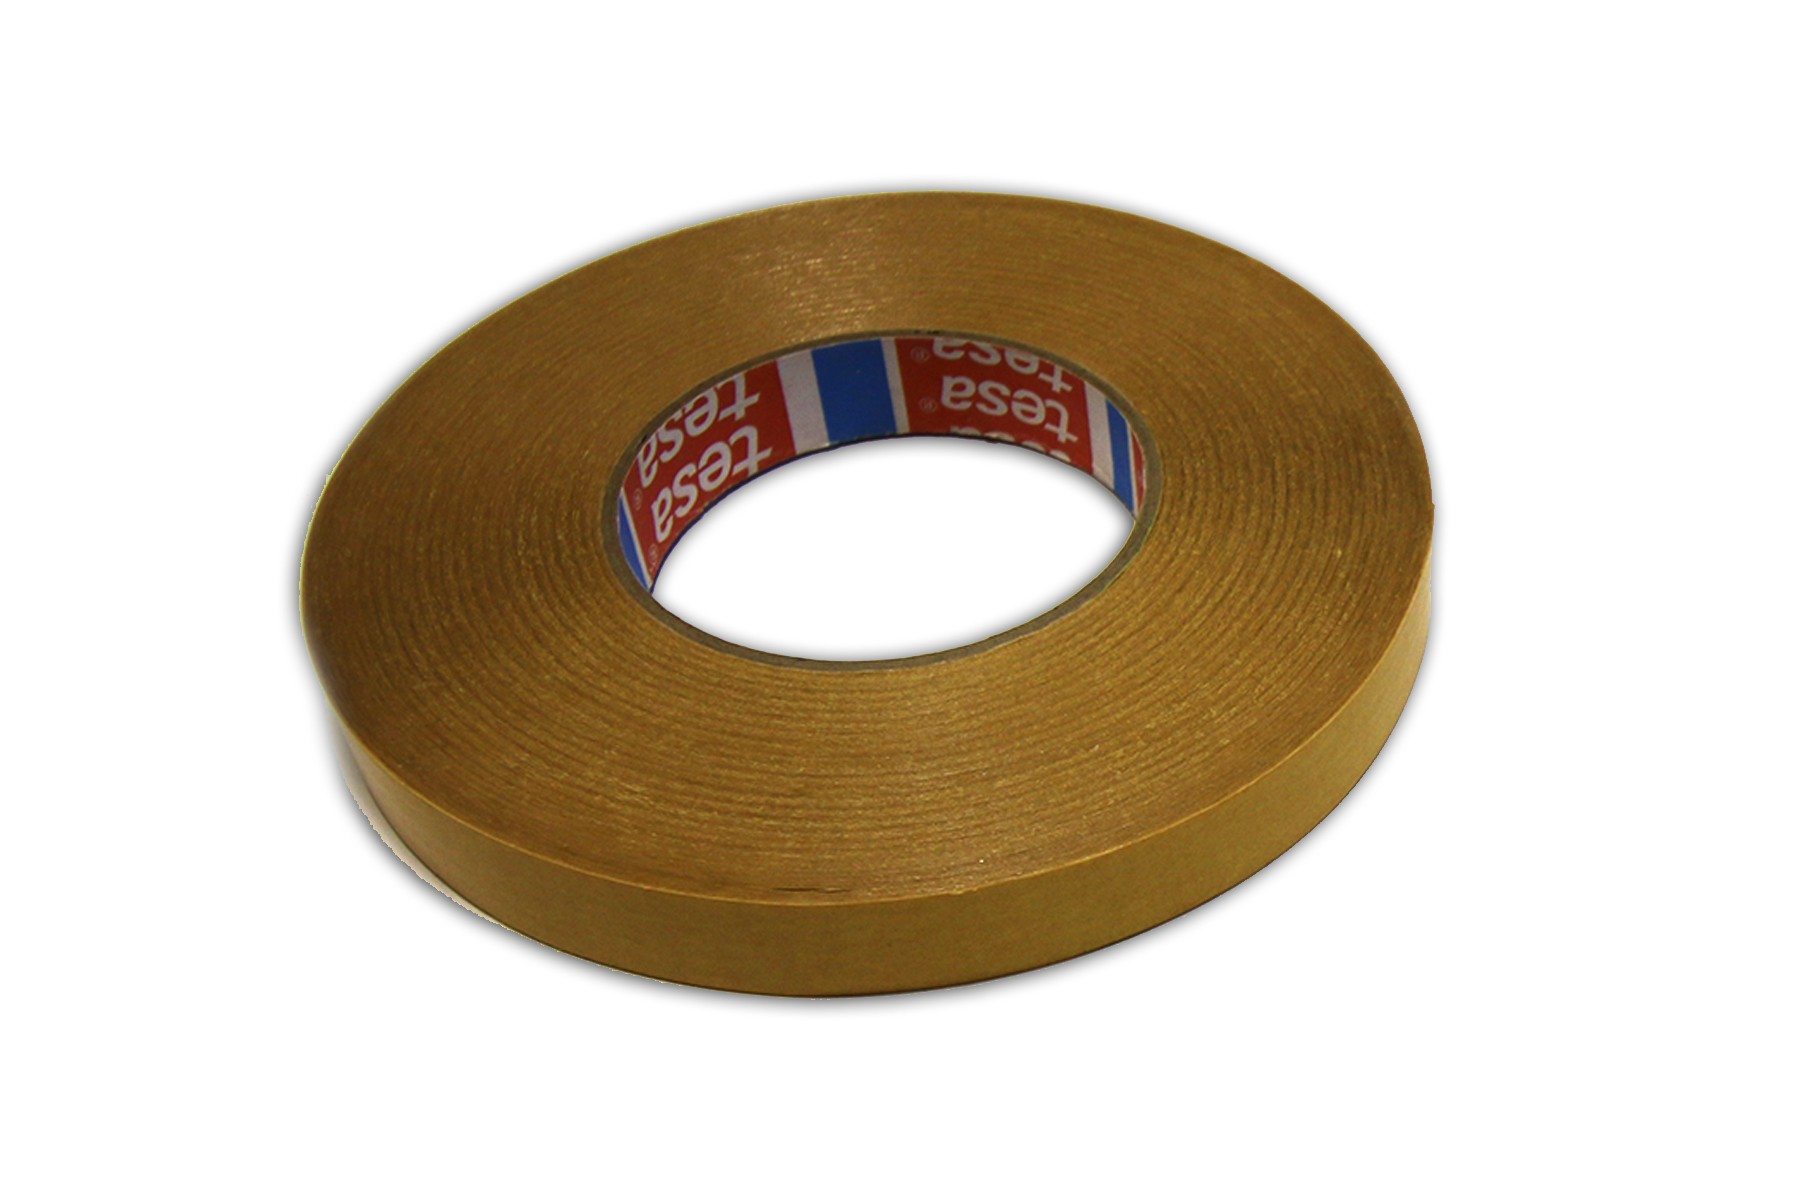 "Tesa Double Sided Application Tape, 1 1/2"" x 60 yd"